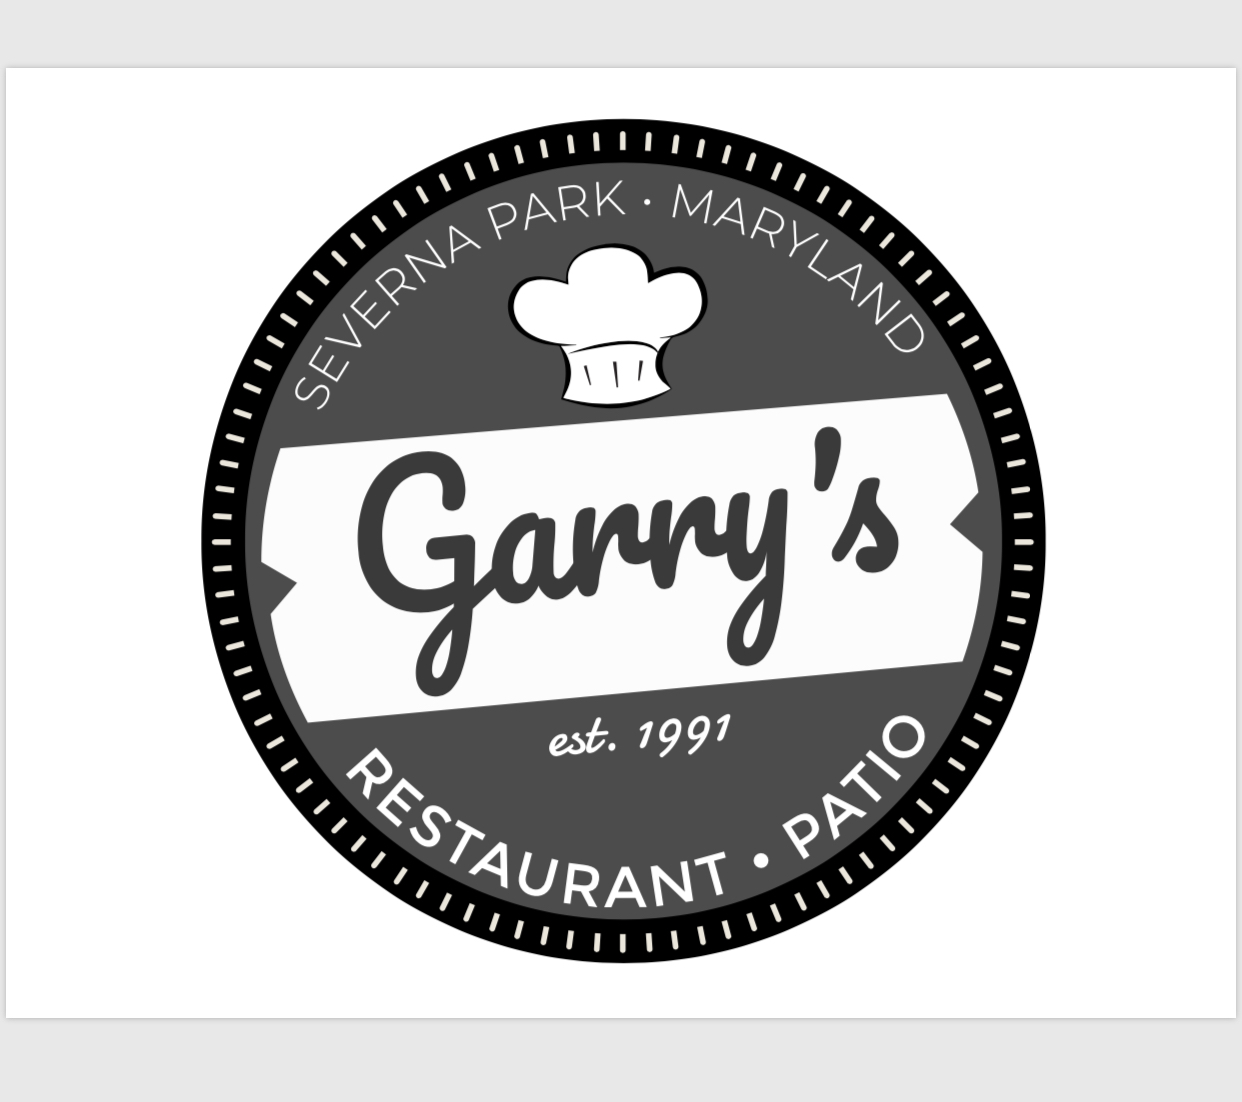 Garry's Grill